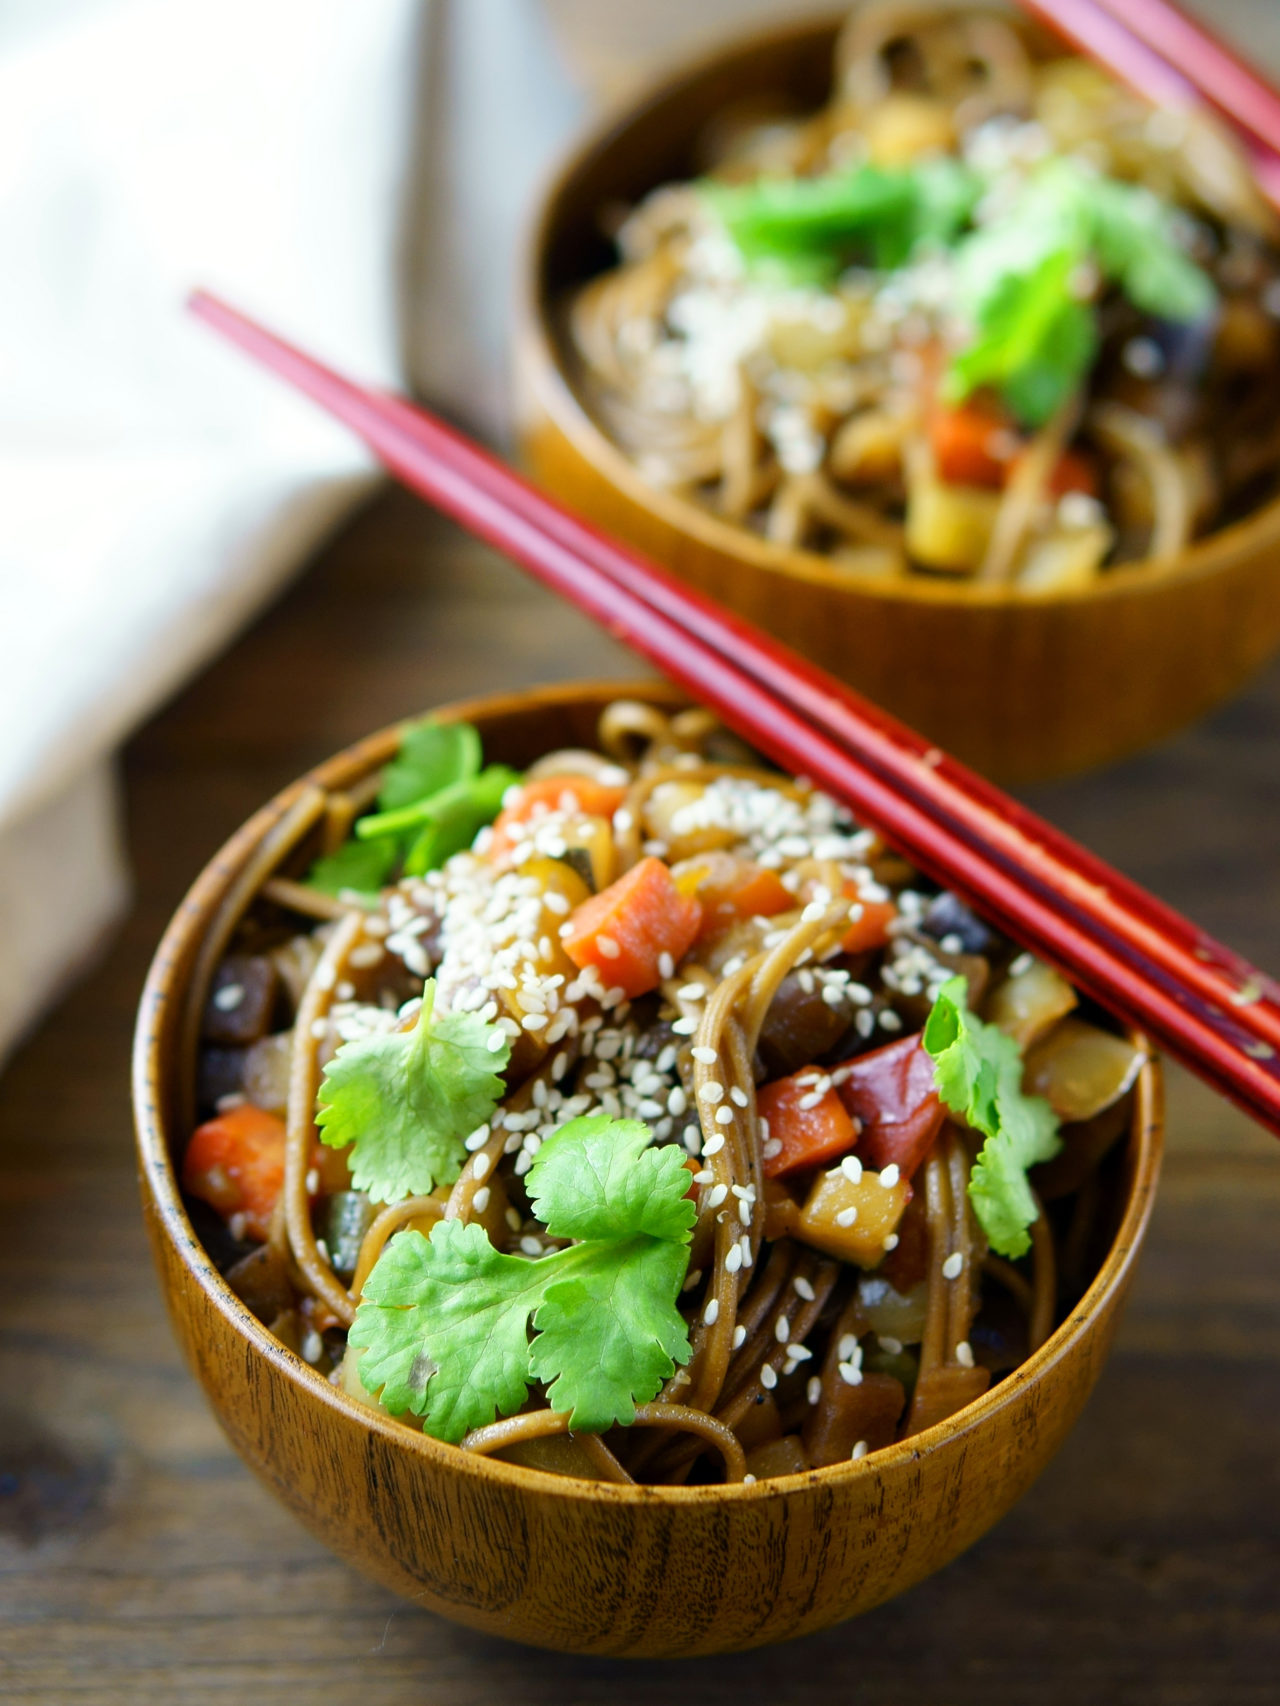 Canva-Noodles-With-Vegetable-in-Bowl-1280x1706.jpg